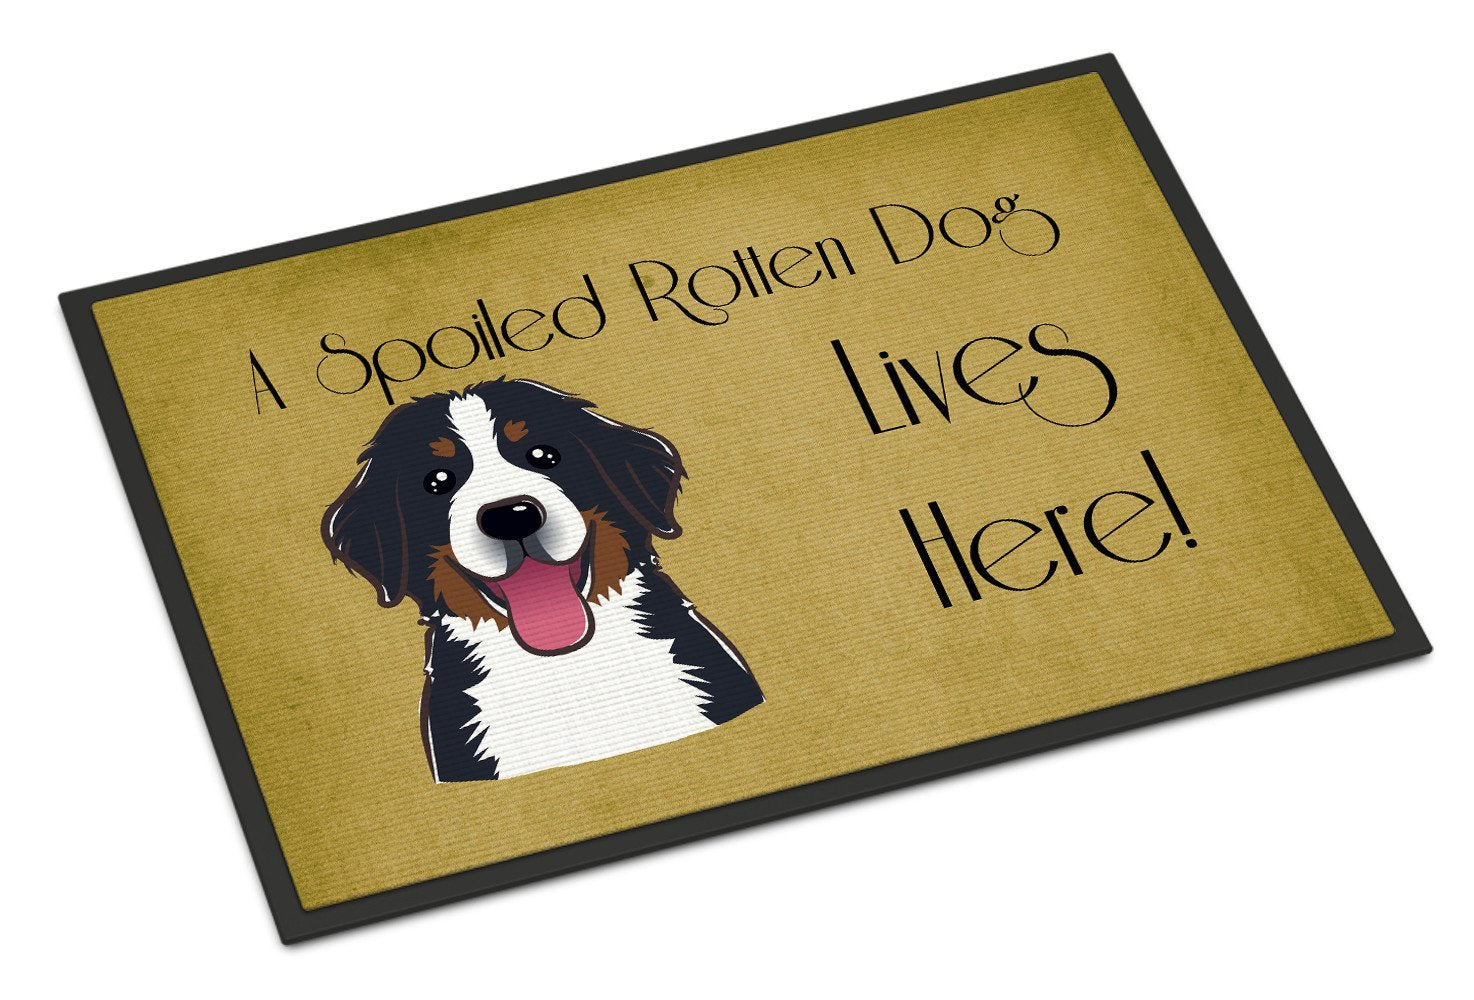 Bernese Mountain Dog Spoiled Dog Lives Here Indoor or Outdoor Mat 18x27 BB1485MAT - the-store.com